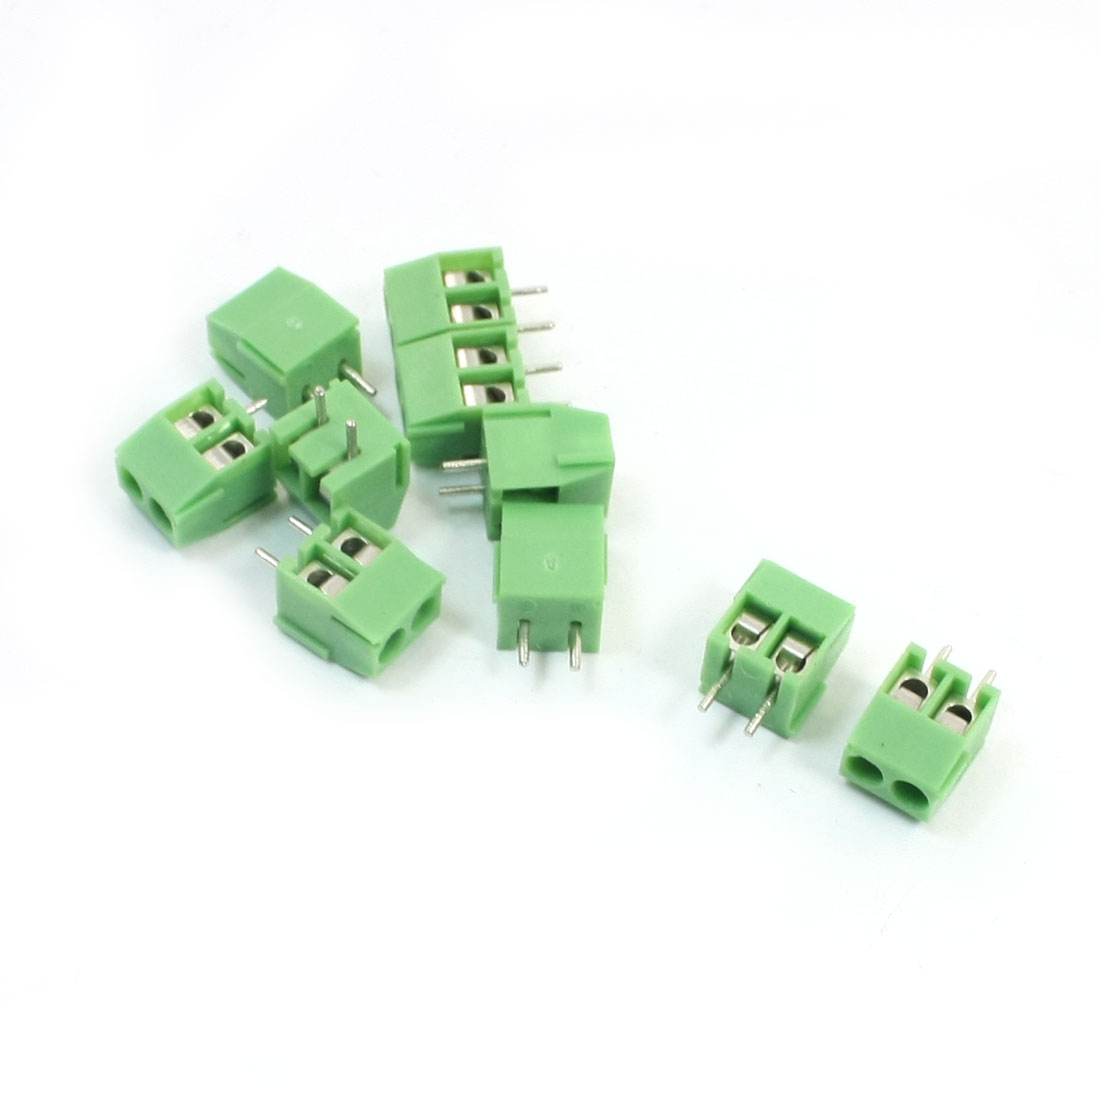 300V 10A 3mm Pitch Pluggable Type 2-Position PCB Mounting Plastic Screw Terminal Block Connector Green 10Pcs